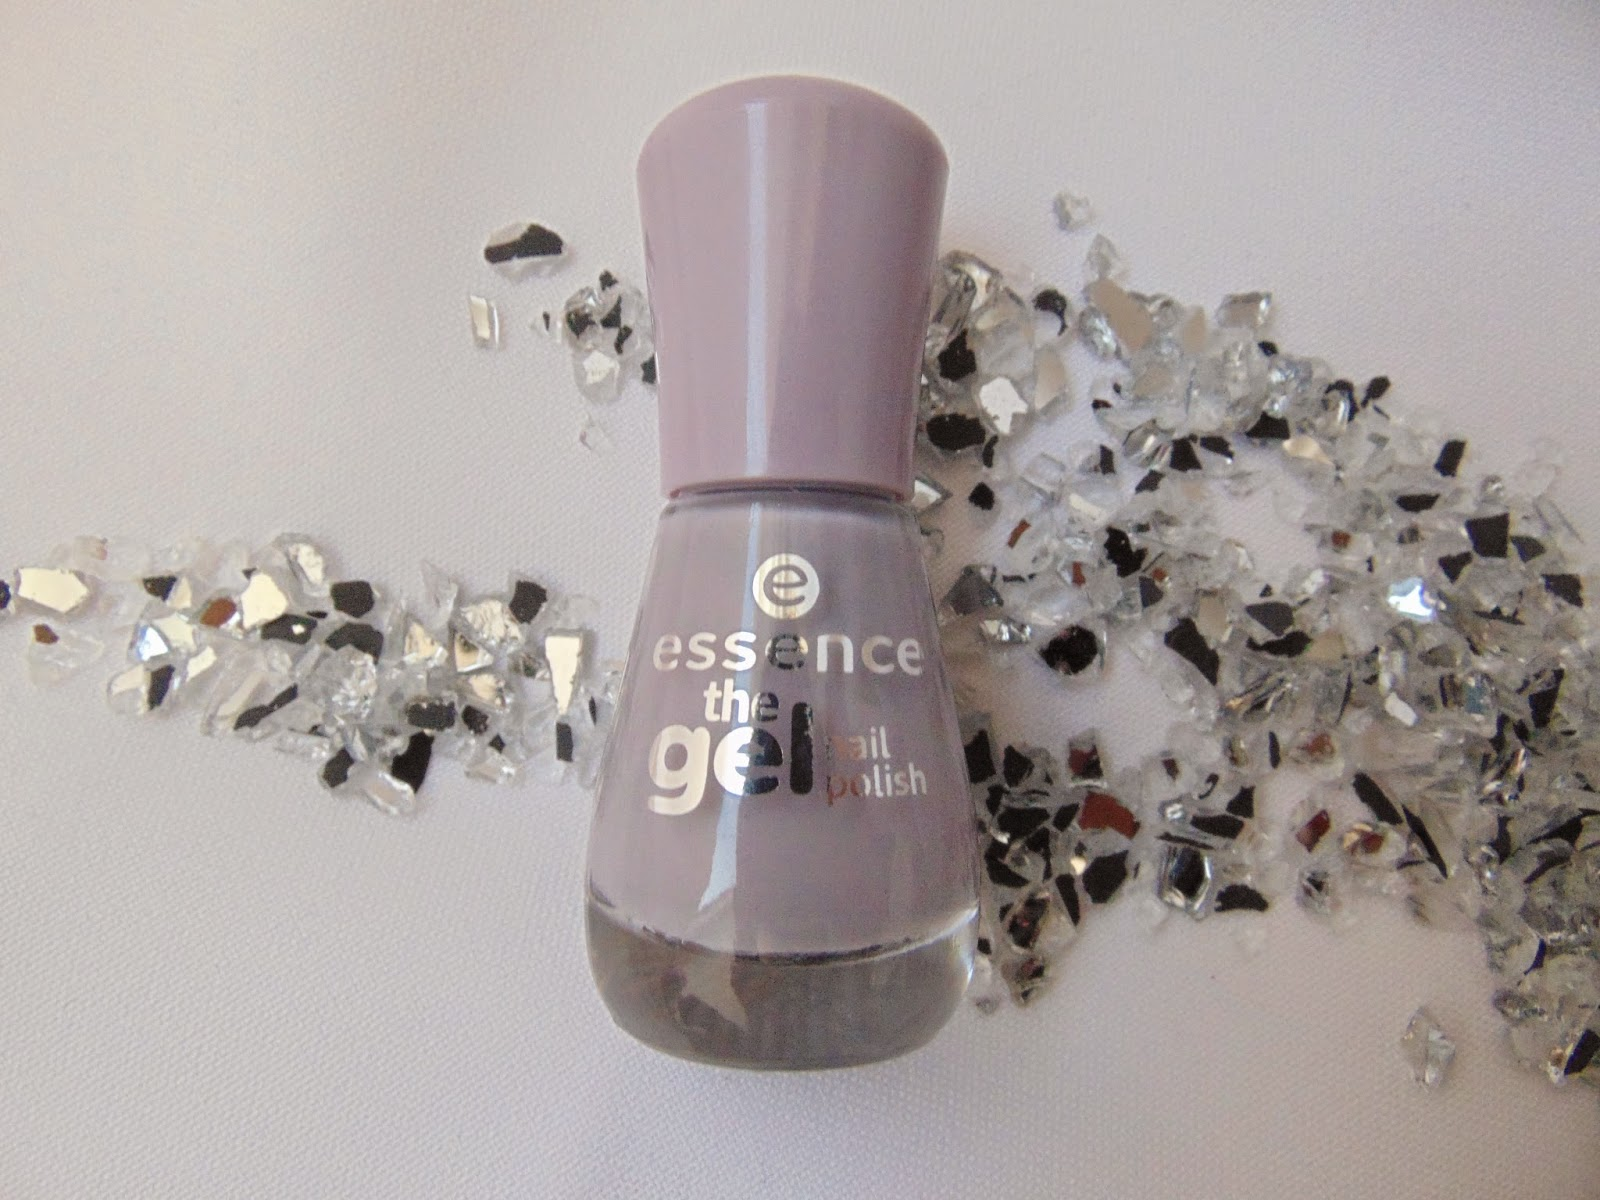 Essence the Gel Nail Polish - 37 Serendipity - www.annitschkasblog.de